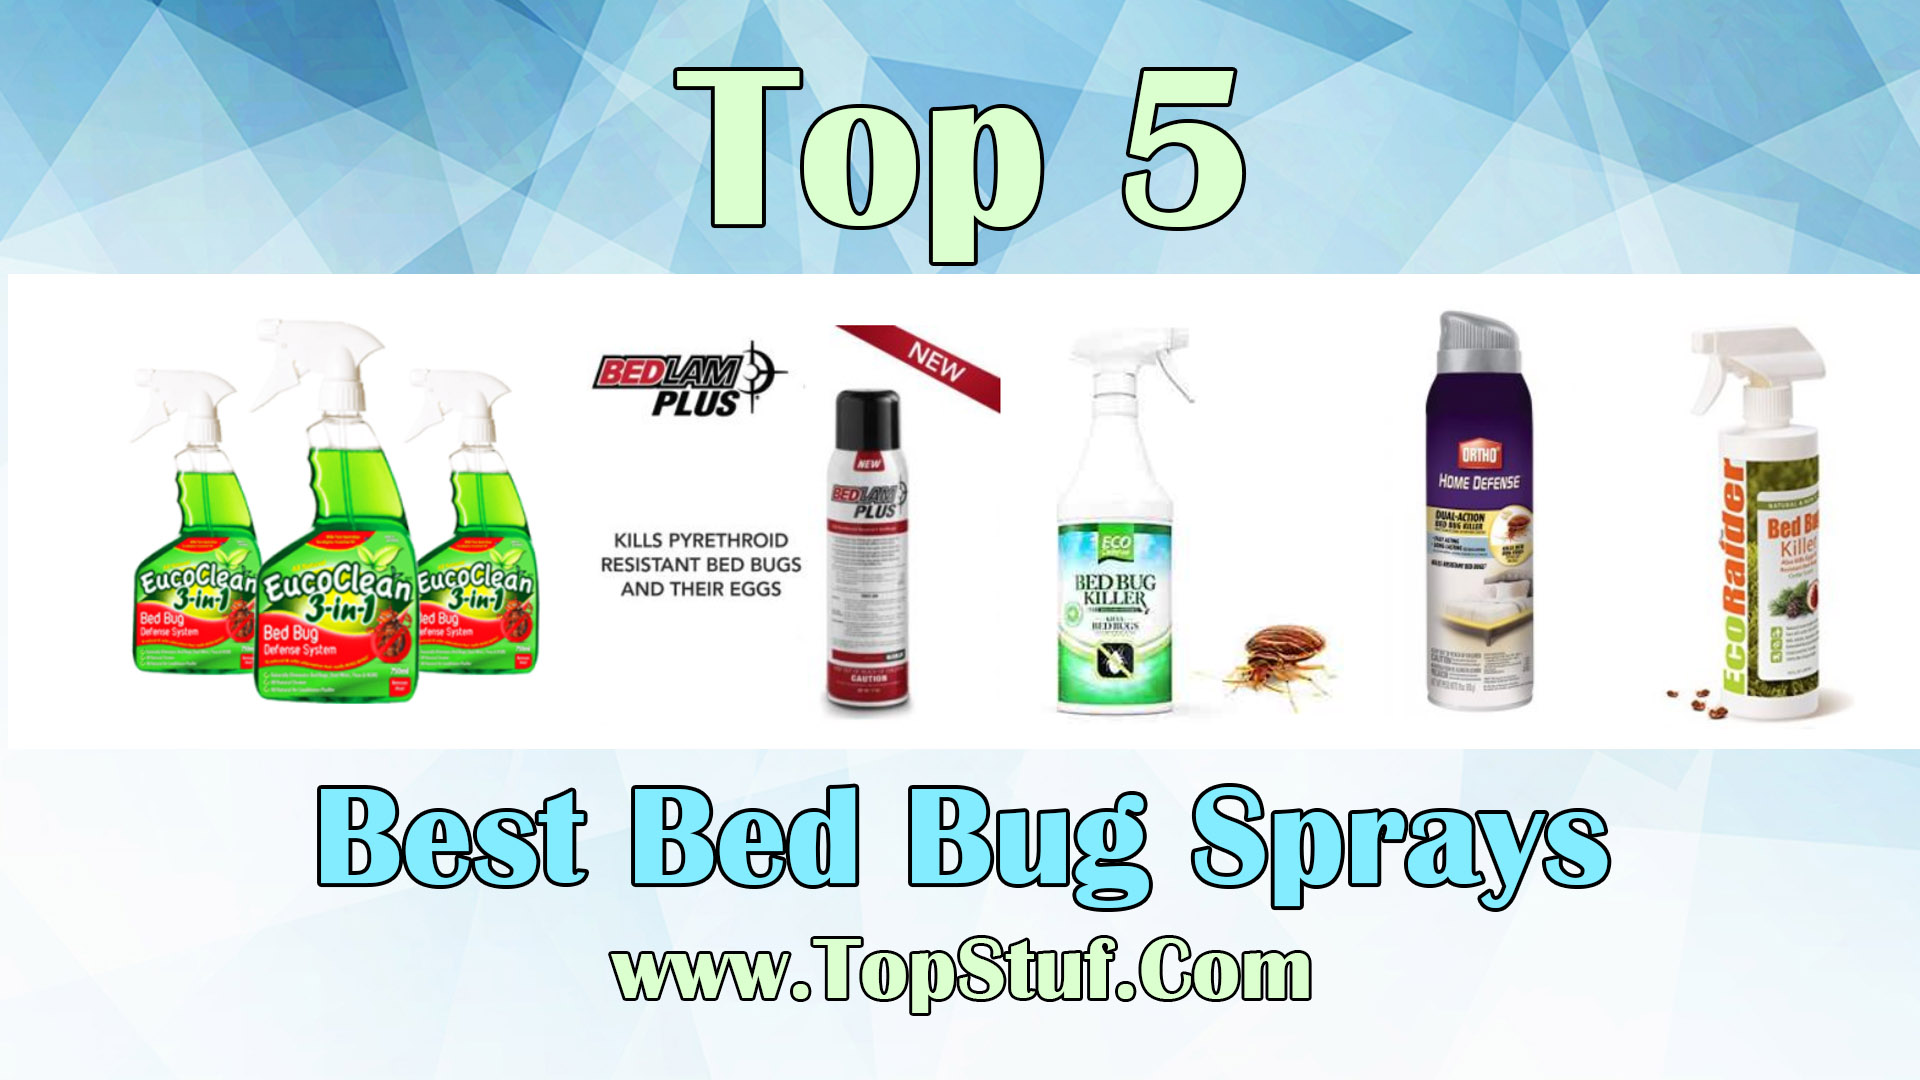 Sprays For Bed Bugs Top 5 Best Bed Bug Sprays Remove Irritating Bed Bugs With Ease